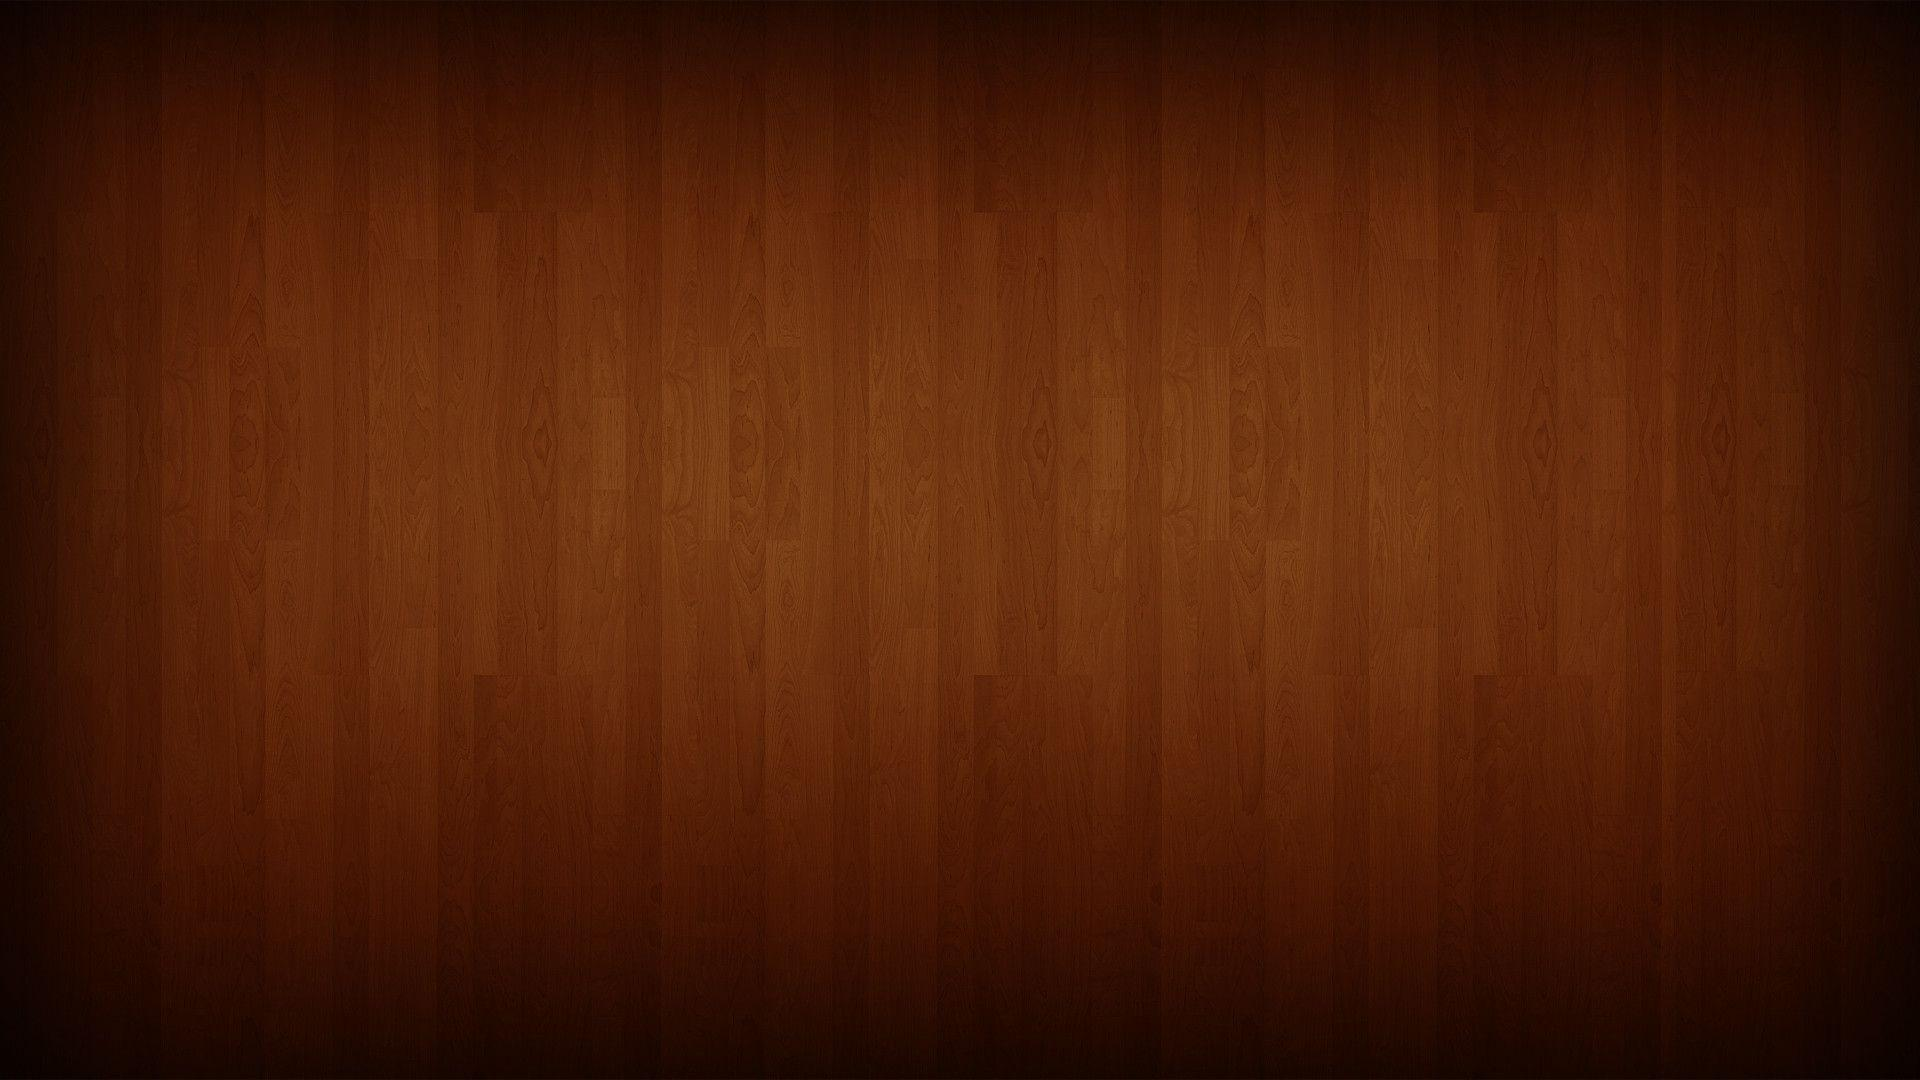 Wood Apple Wallpapers 1080p